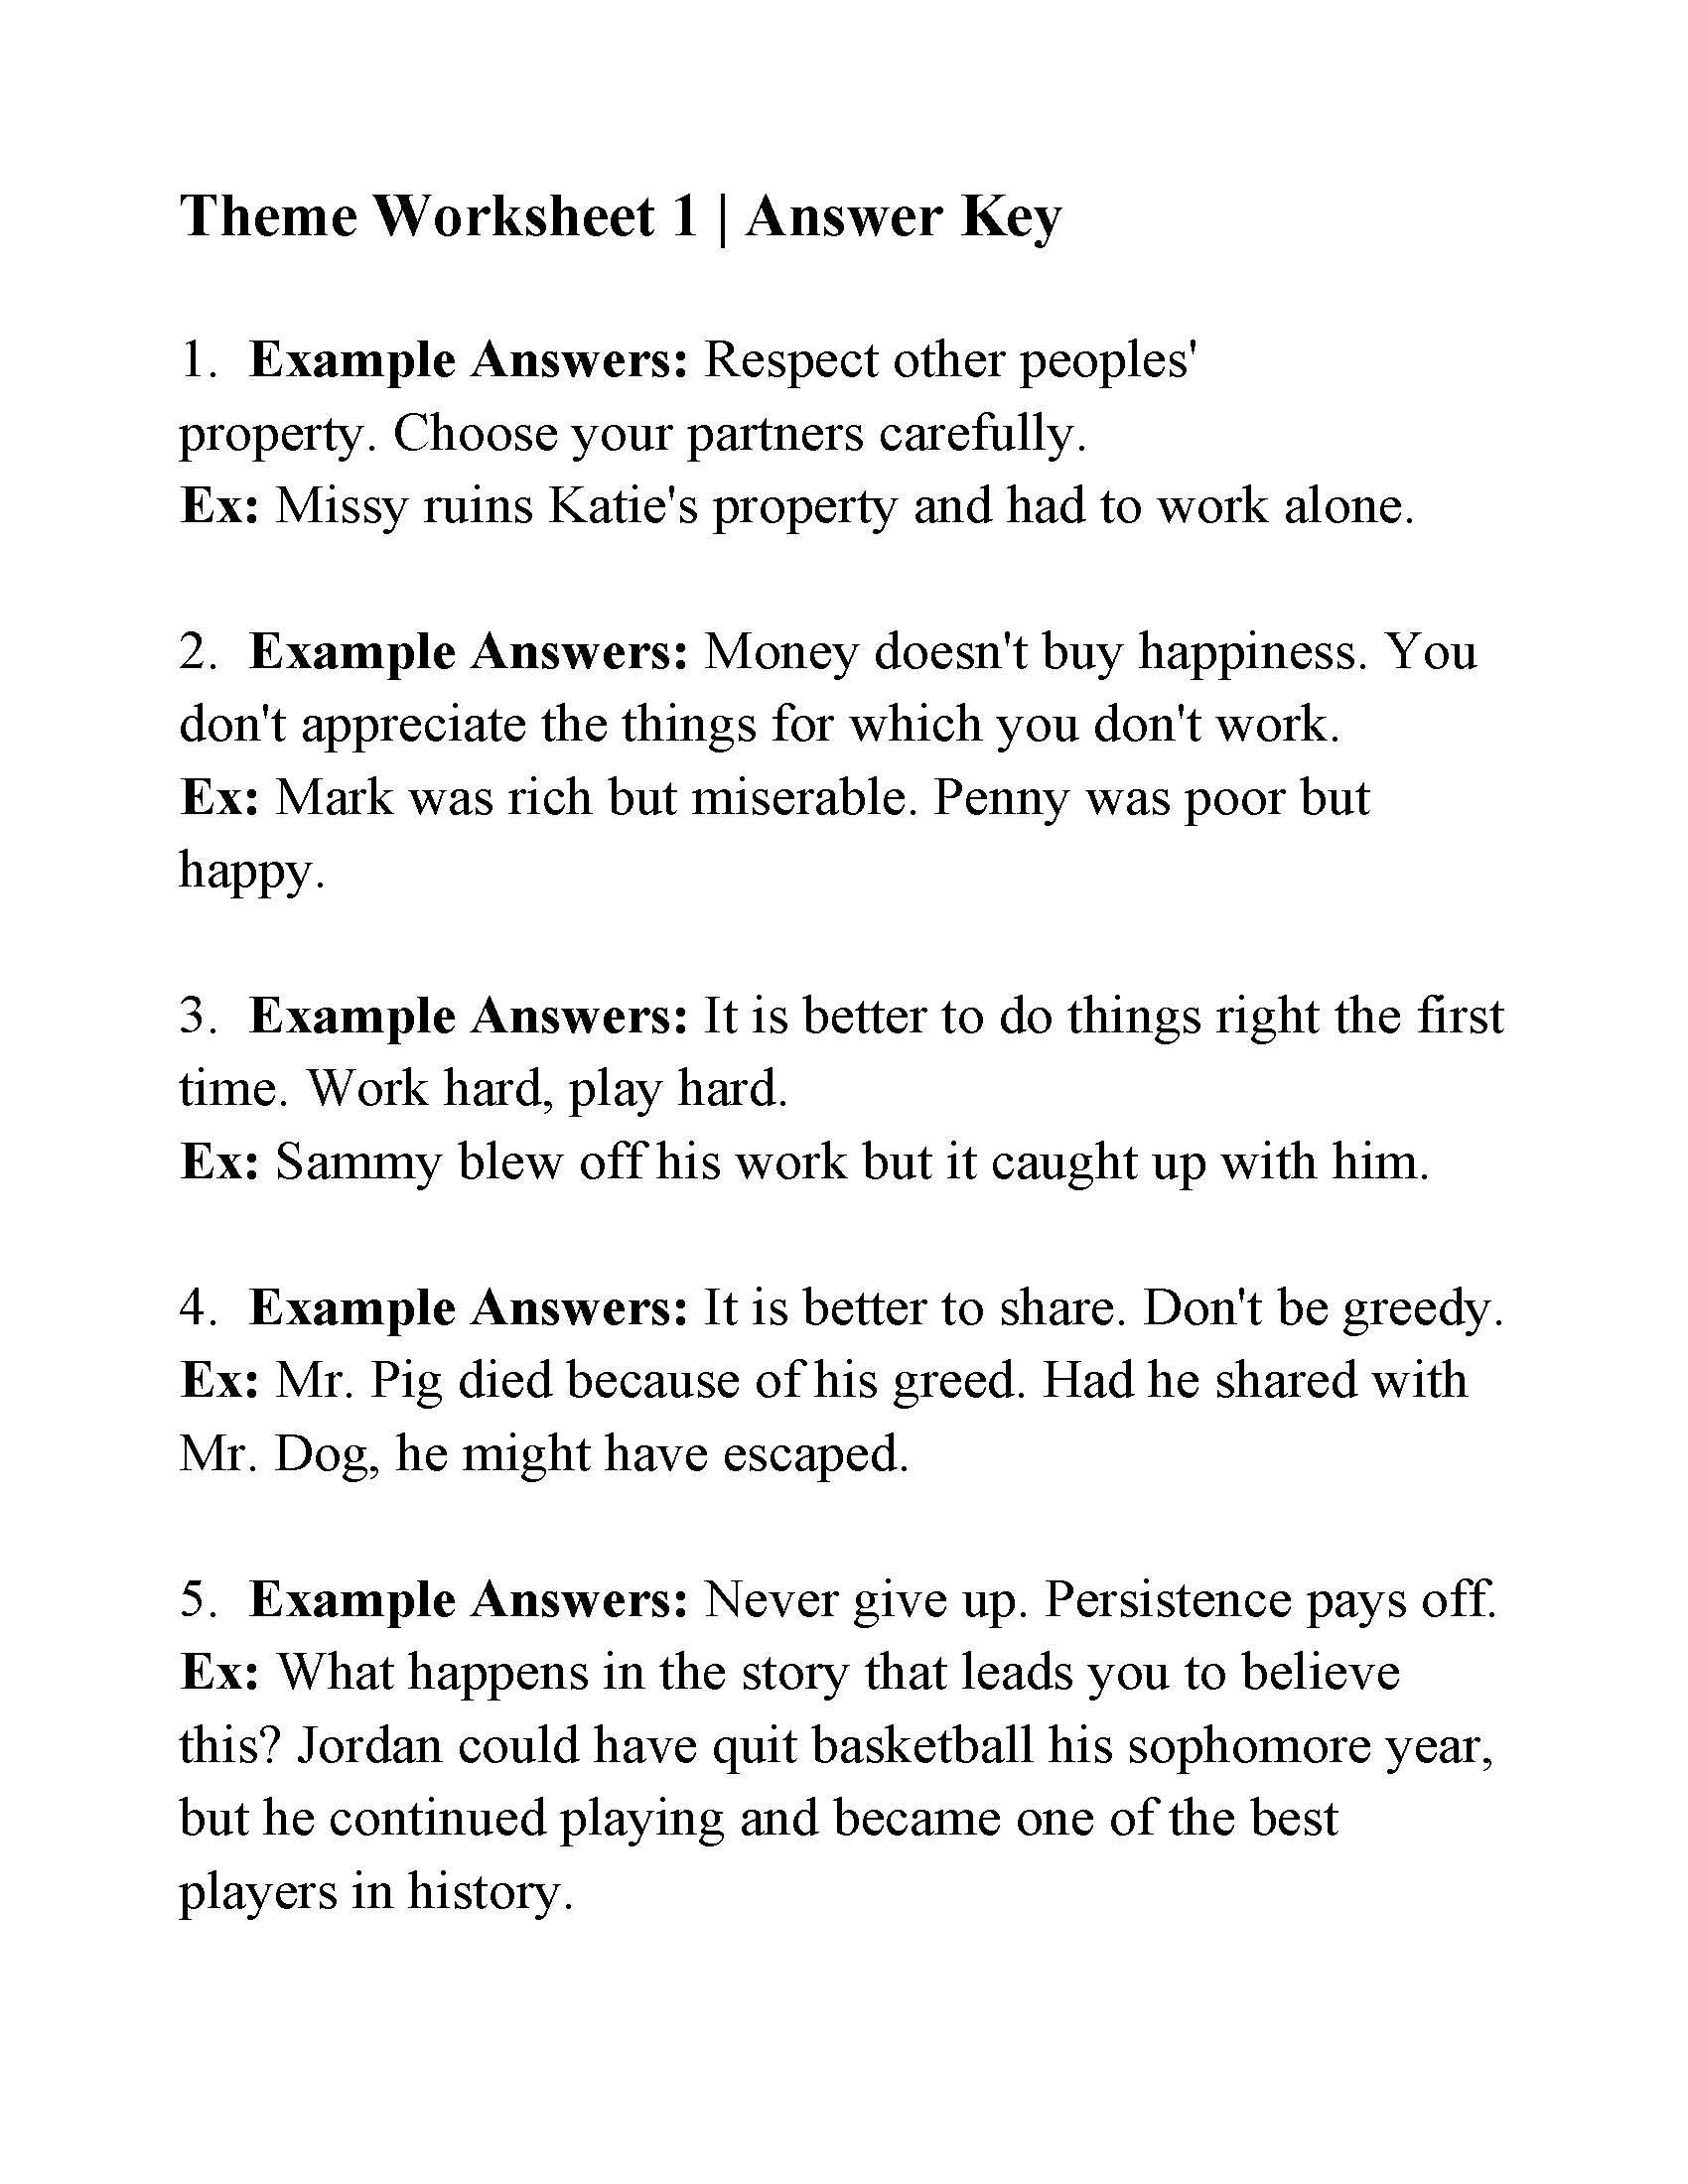 Theme Worksheet 4th Grade This is the Answer Key for the theme Worksheet 1